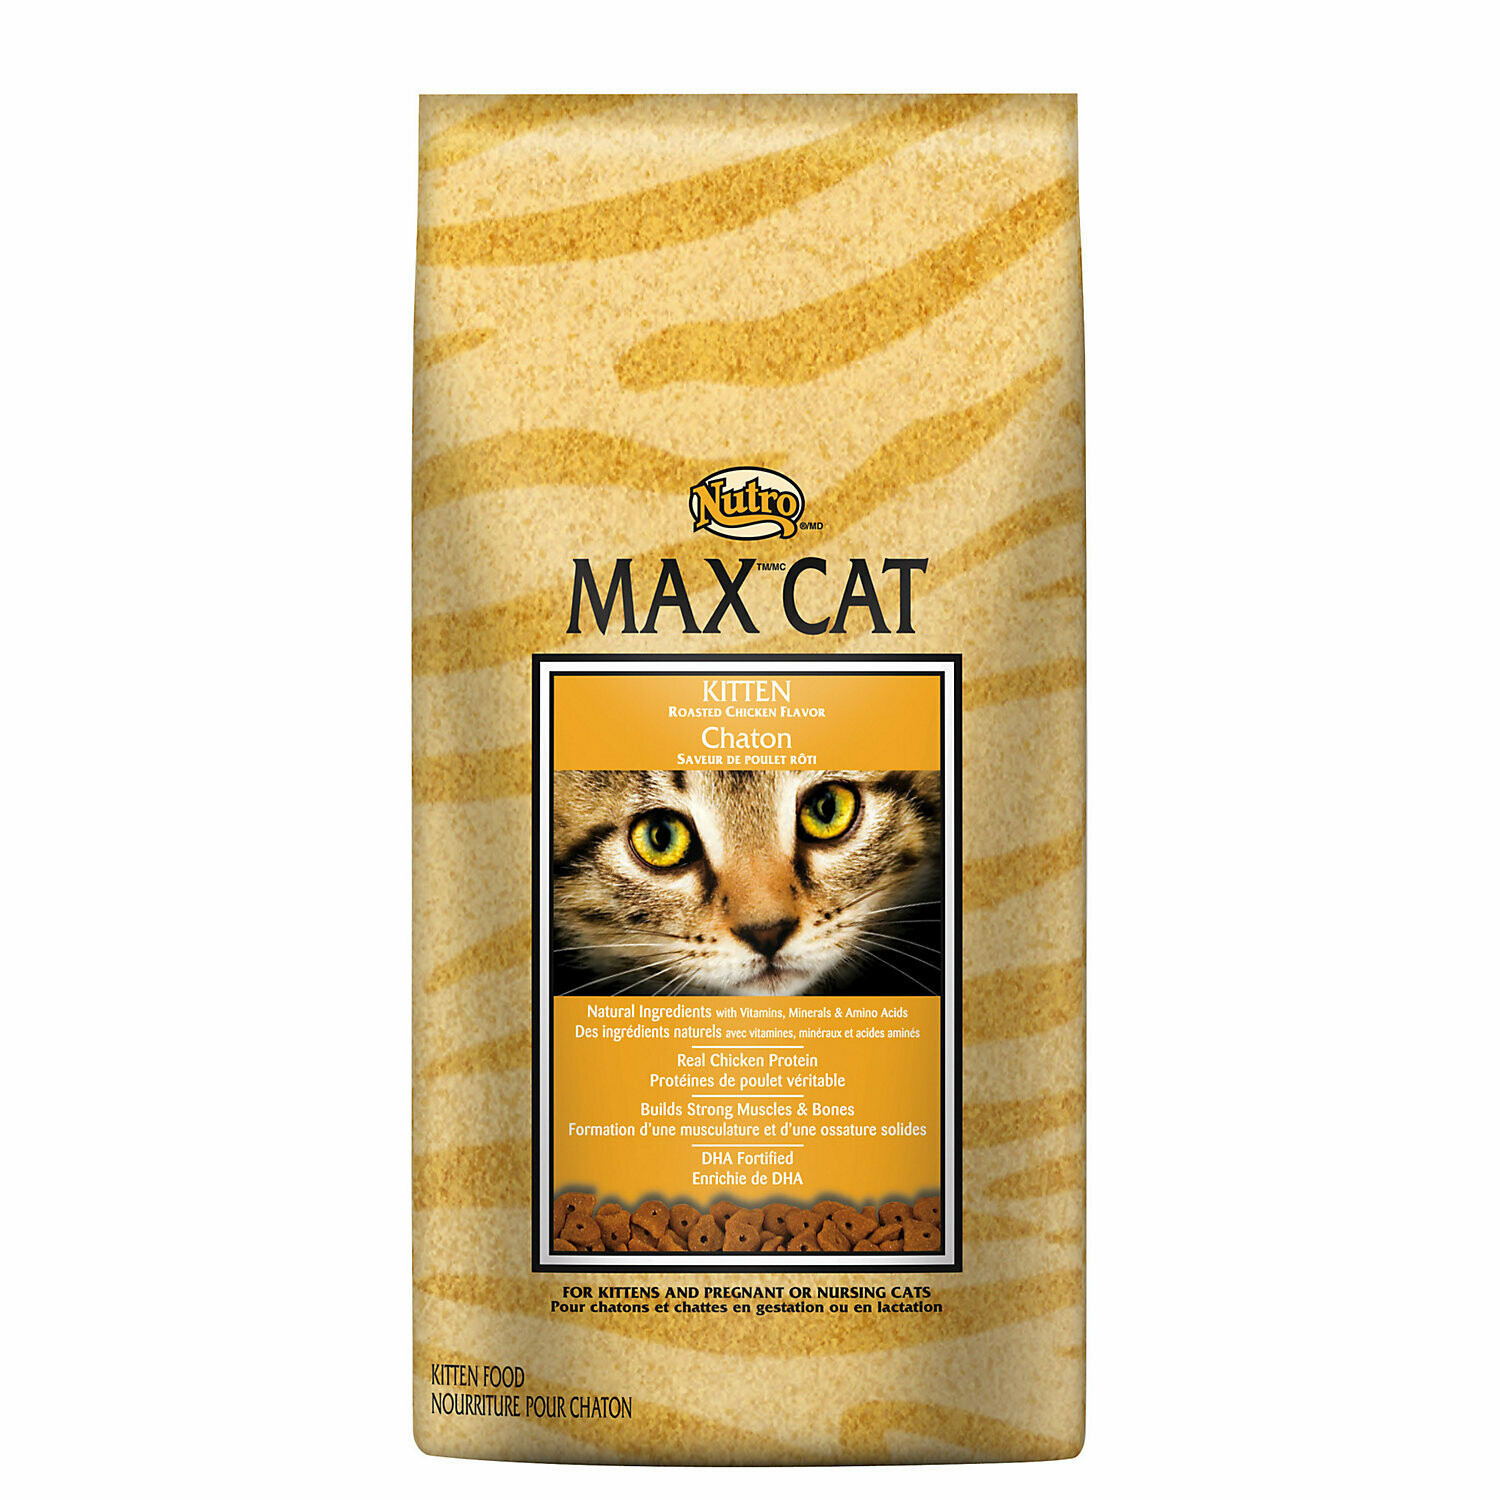 Nutro Max Real Roasted Chicken Flavor Protein with Vitamisn Kitten Food 3lbs (12/18) (A.J4)